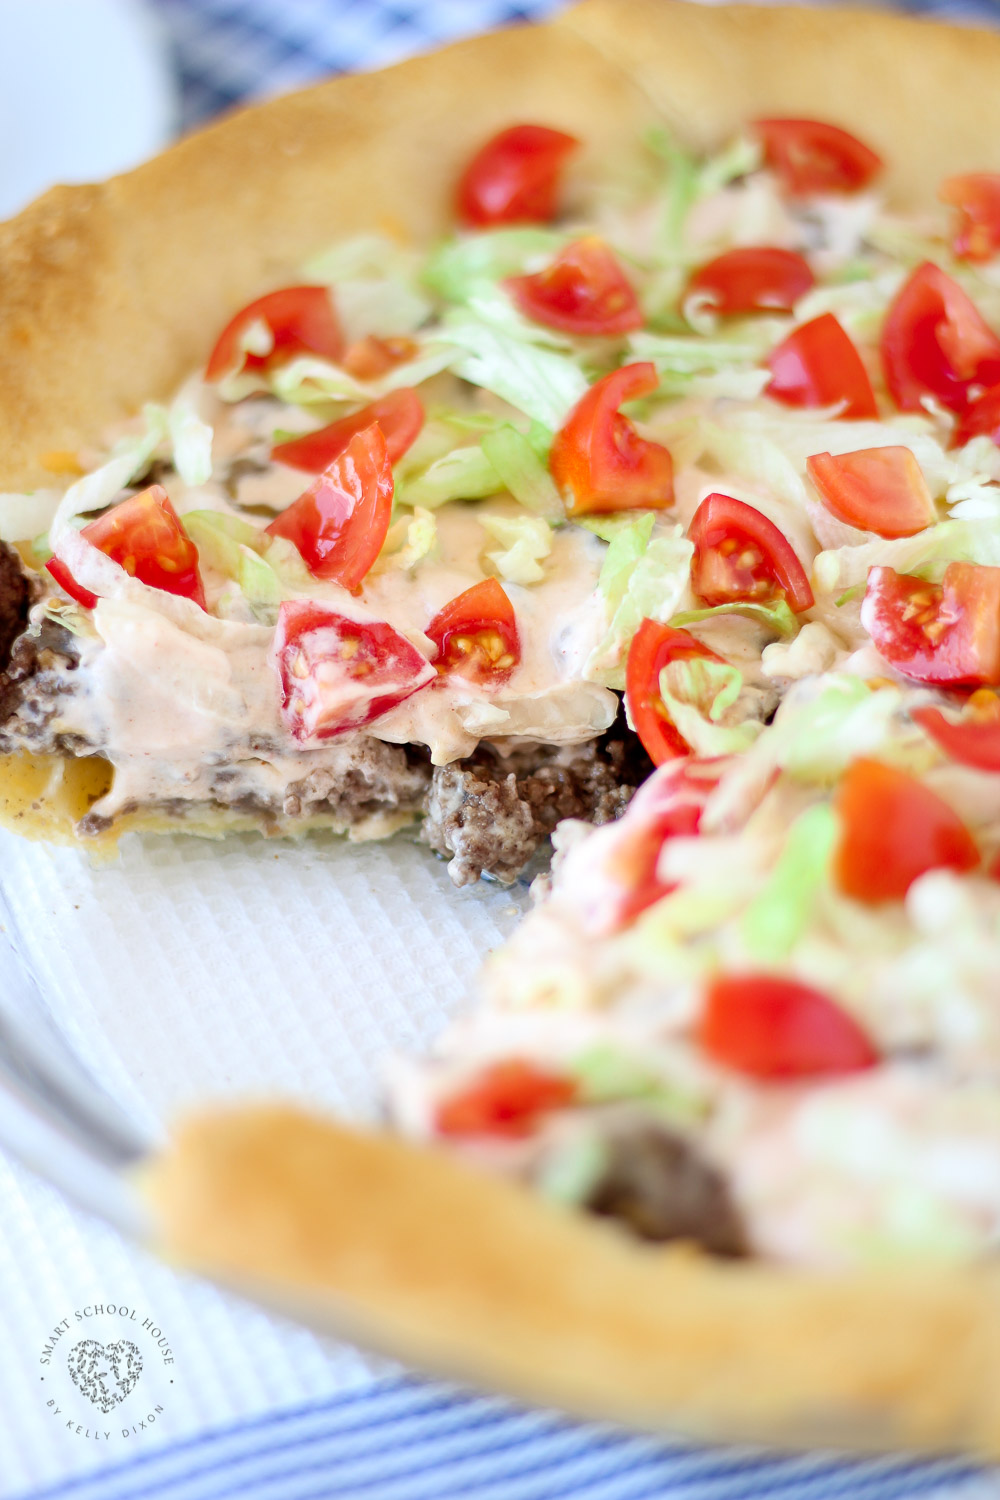 Taco Pie. An easy recipe for dinner! Fluffy dough baked in a pie dish then loaded with beef and cheese. Our secret sauce makes this taco pie over the top. #TacoPie #DinnerIdeas #EasyDinner